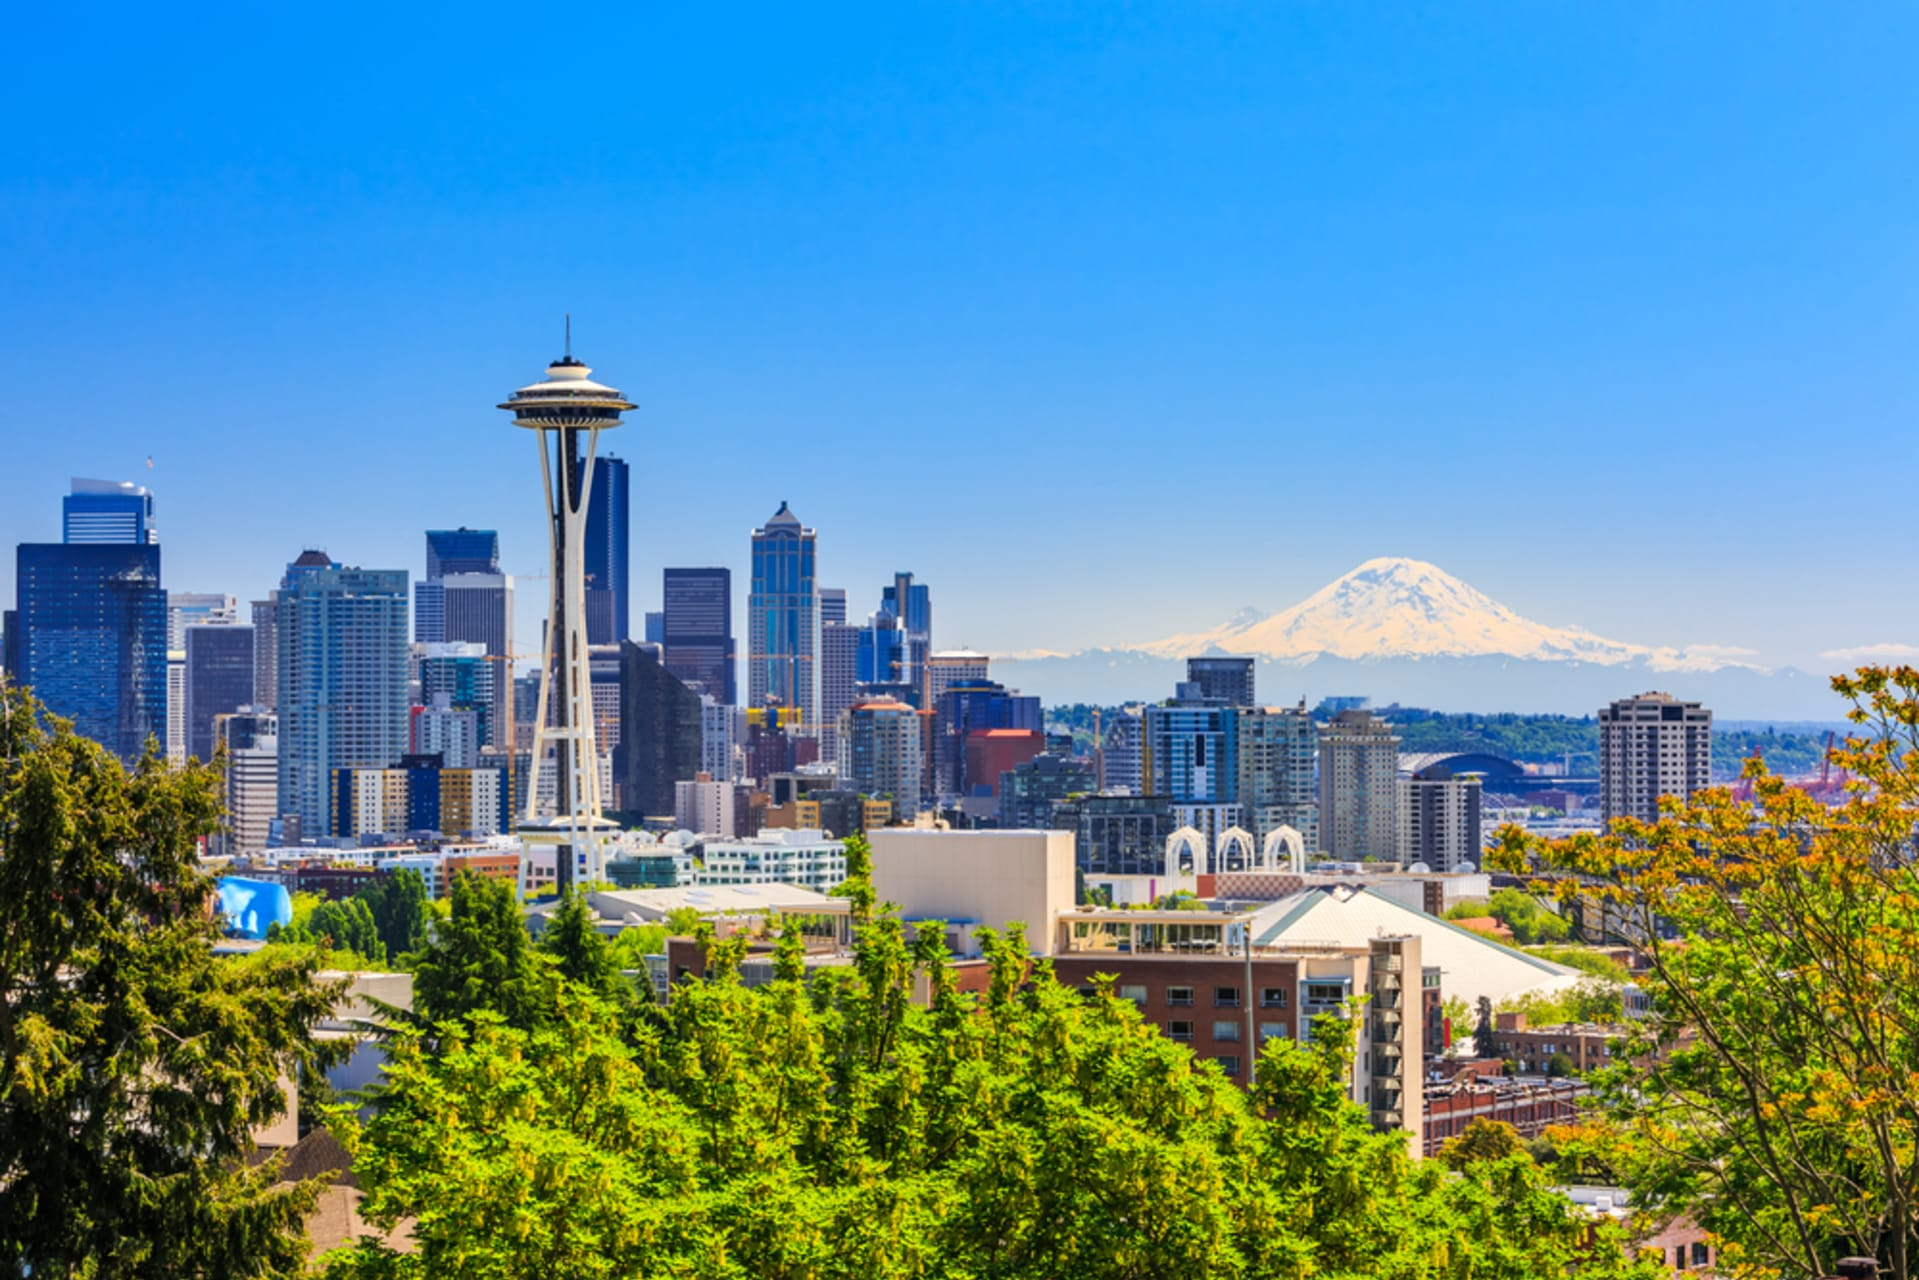 Seattle - Explore the History of Downtown Seattle